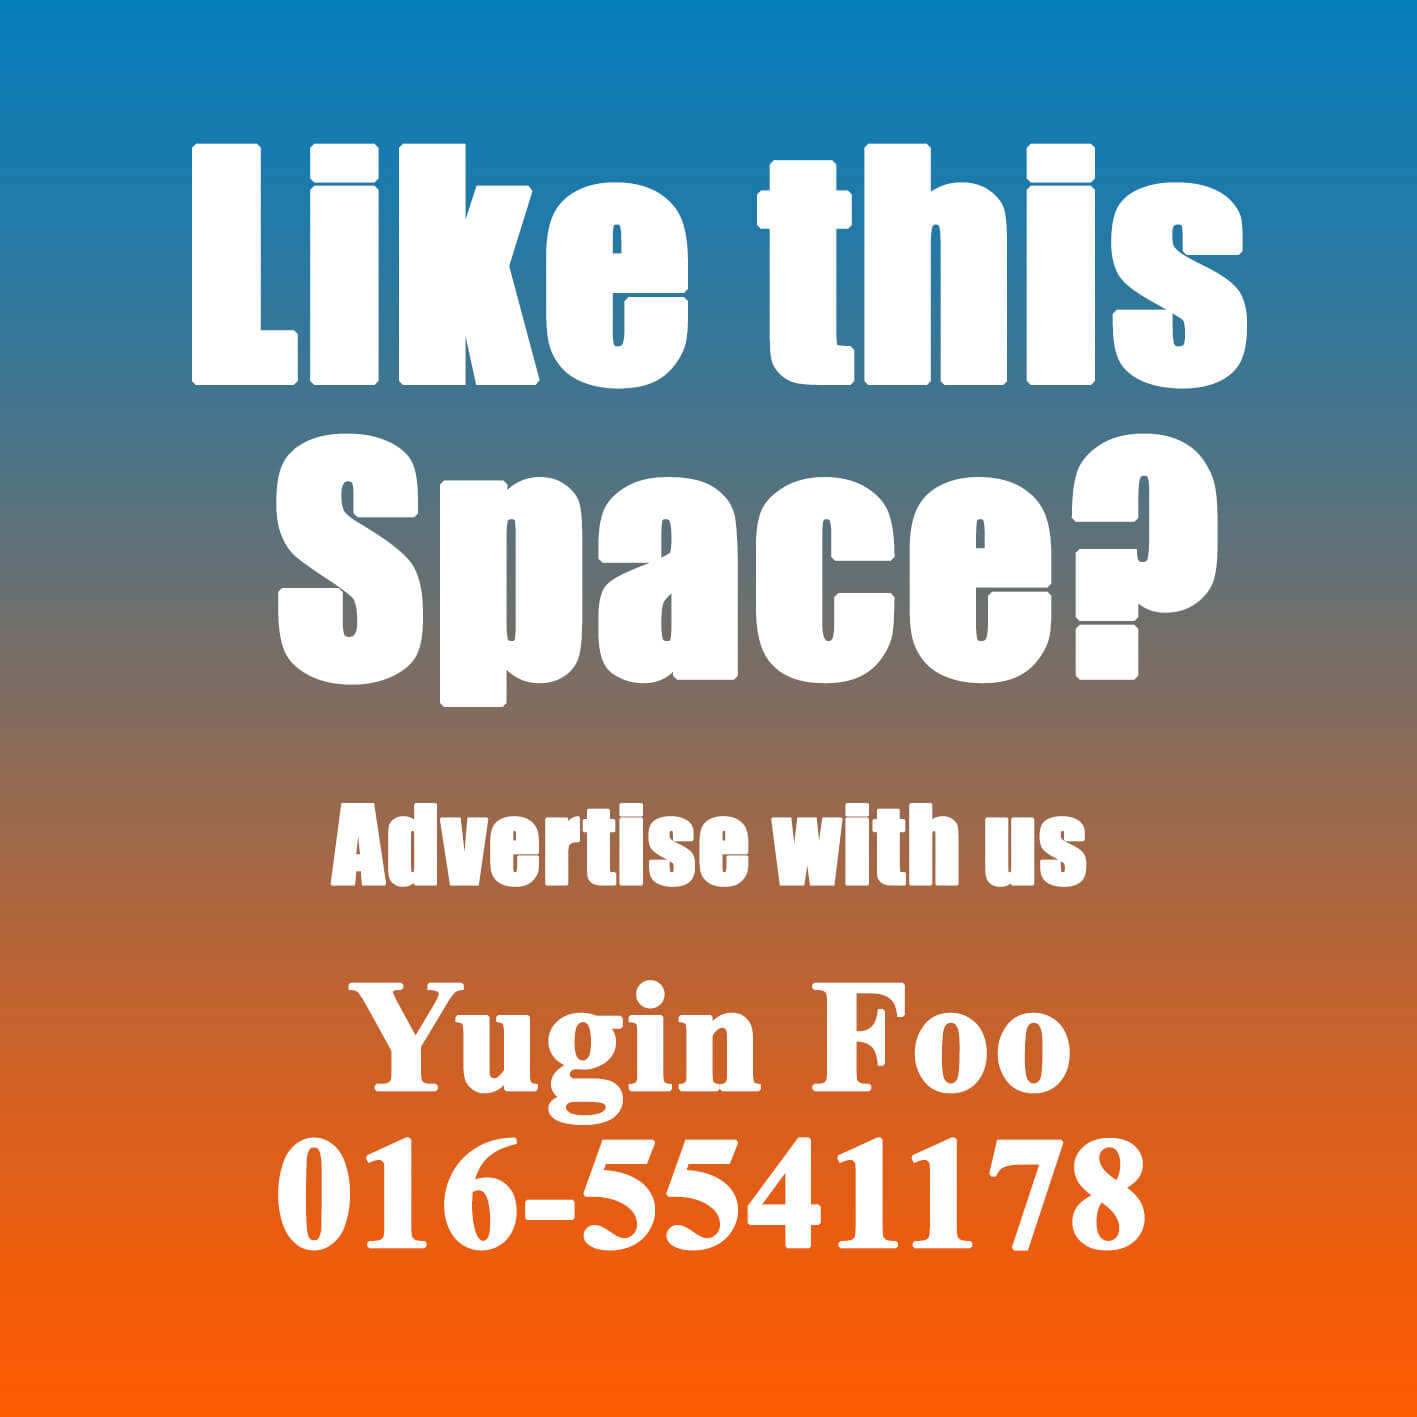 Advertise with IPOH ECHO - Yugin Foo 016-5541178